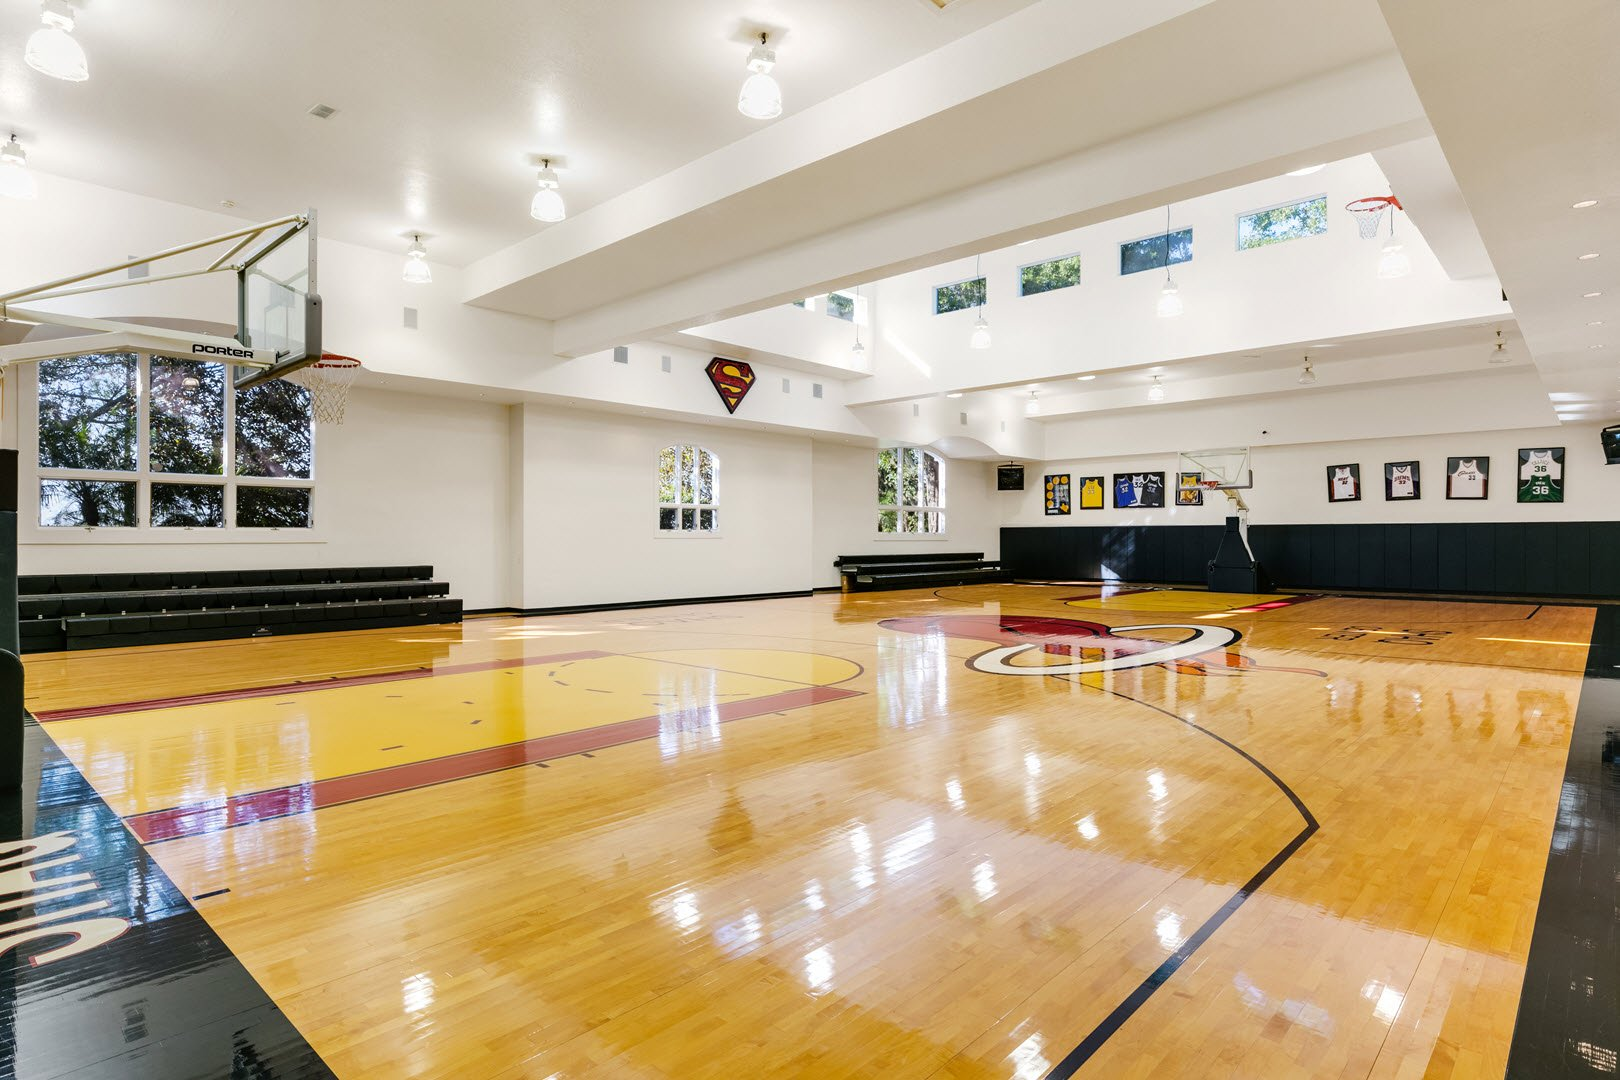 Shaquille O'Neal Florida Mansion For Sale - 6000 square foot basketball court